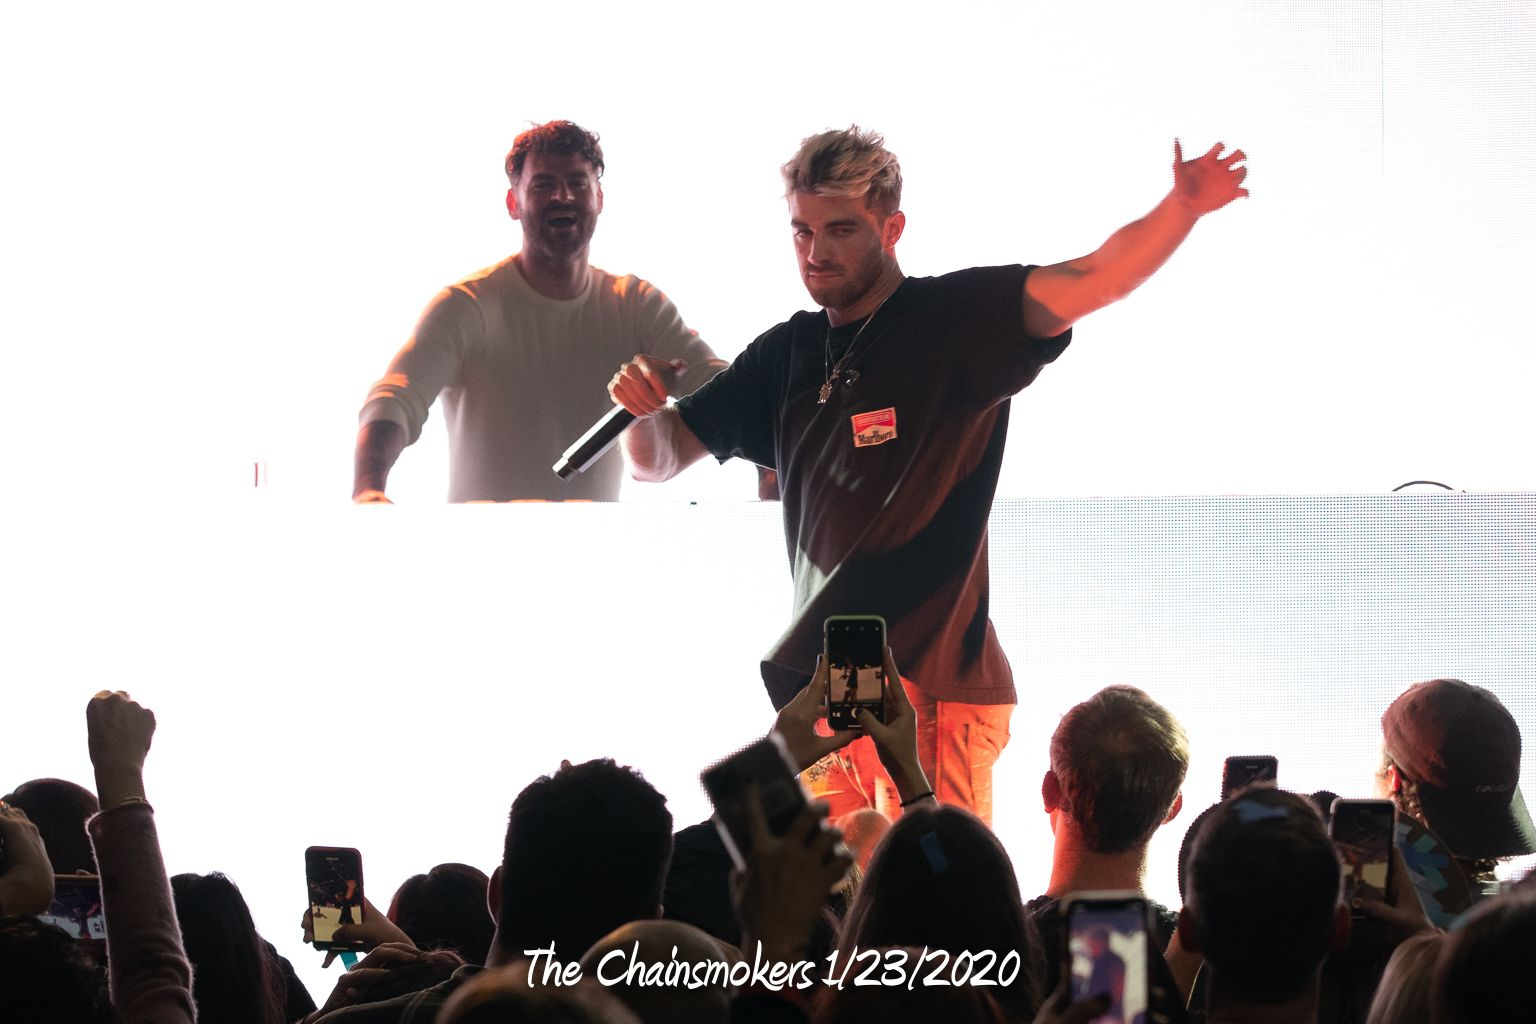 The Chainsmokers 1/23/2020